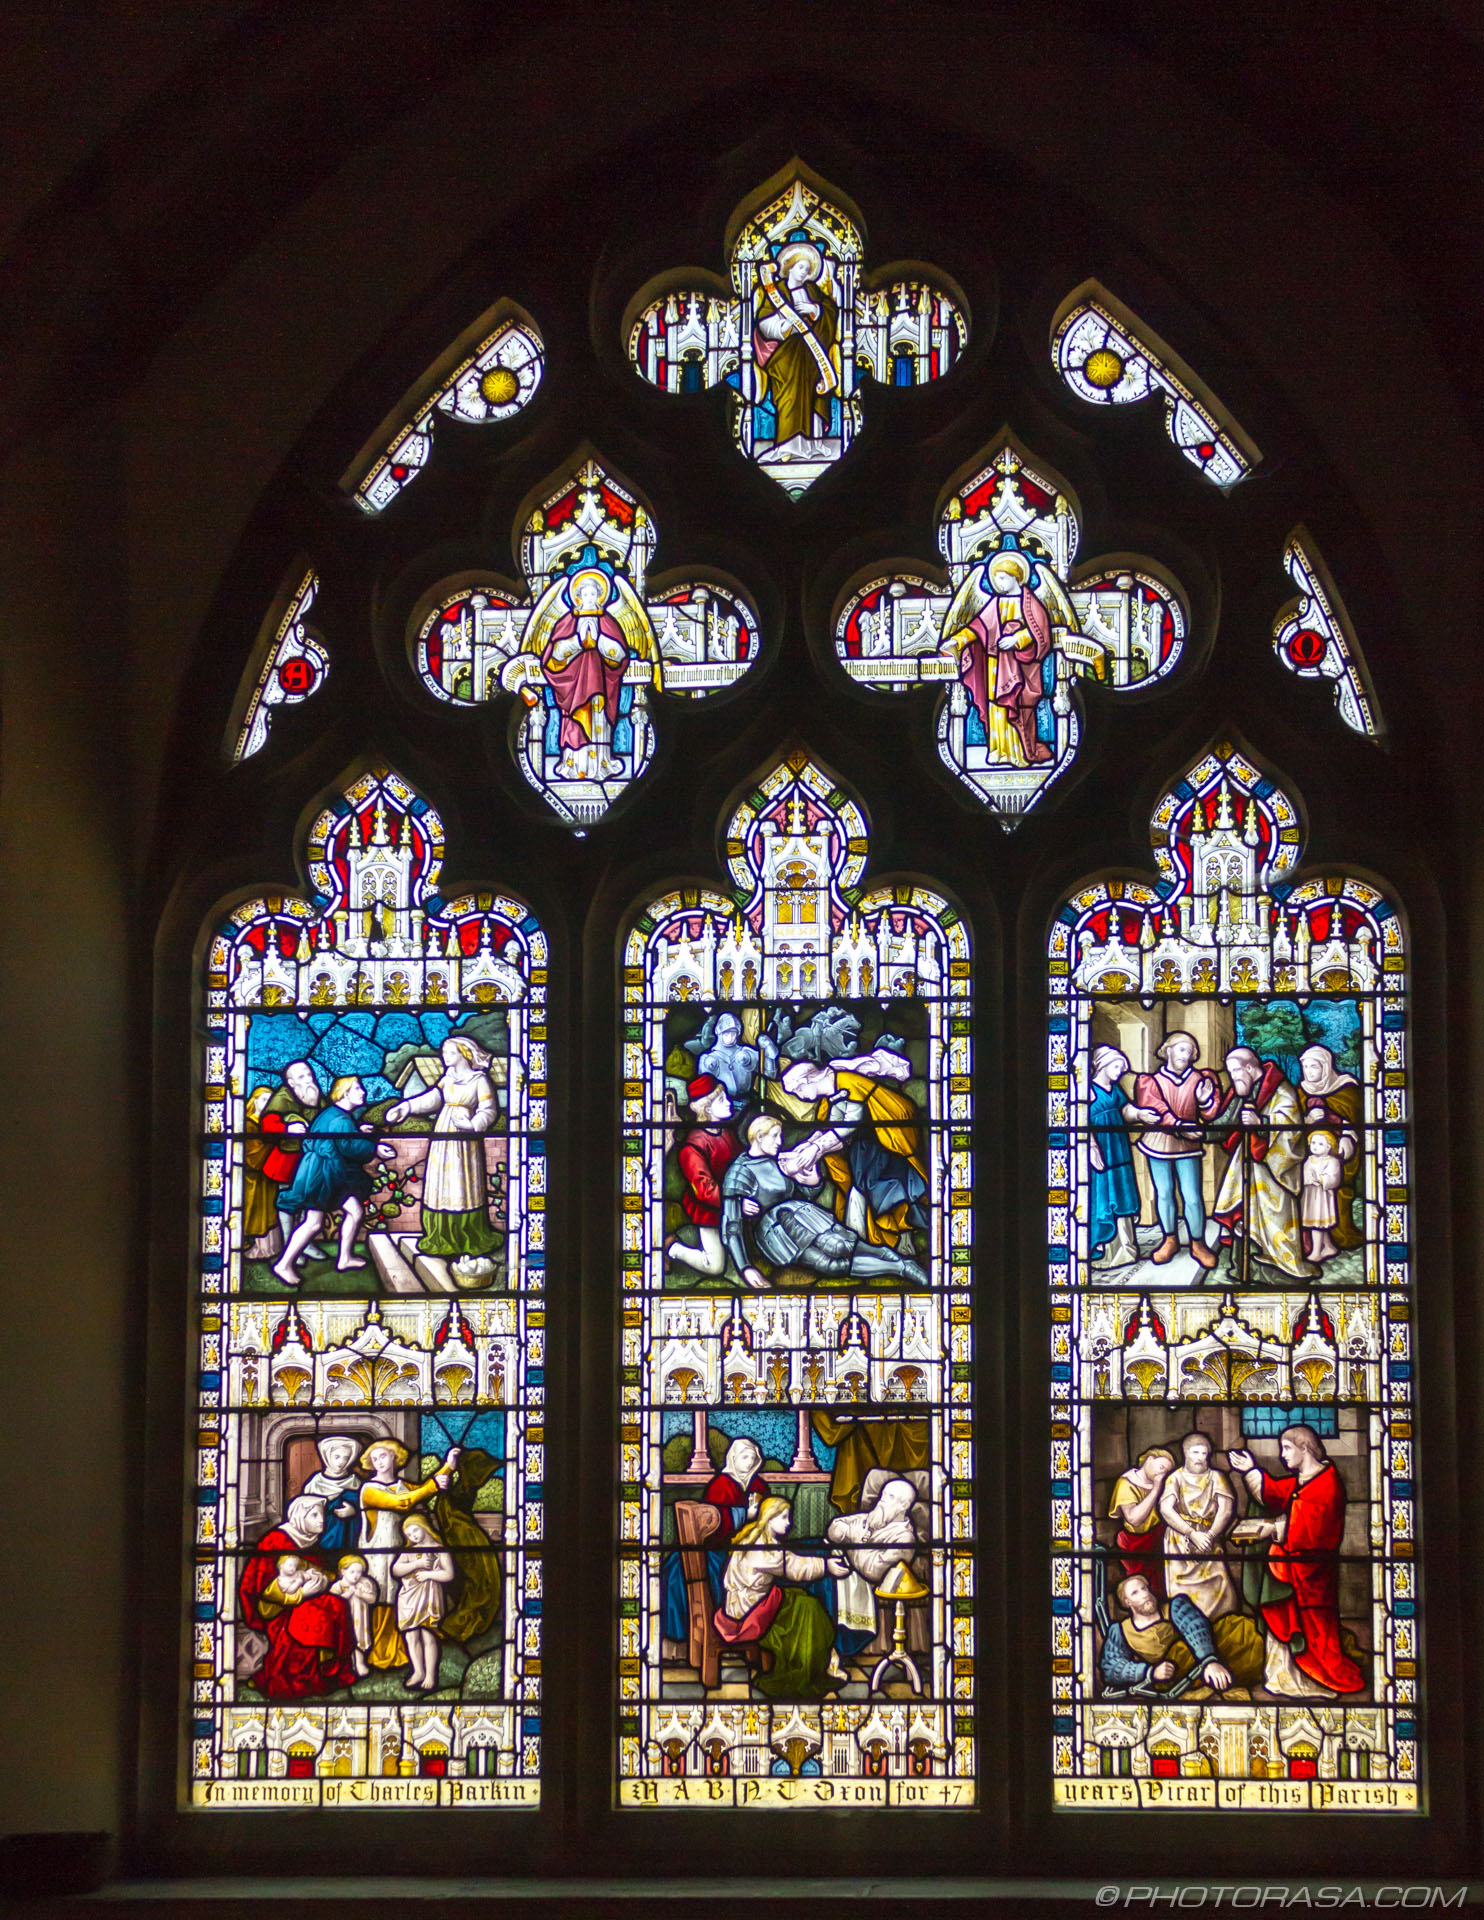 http://photorasa.com/st-marys-church-in-lenham/memorial-stained-glass-window/